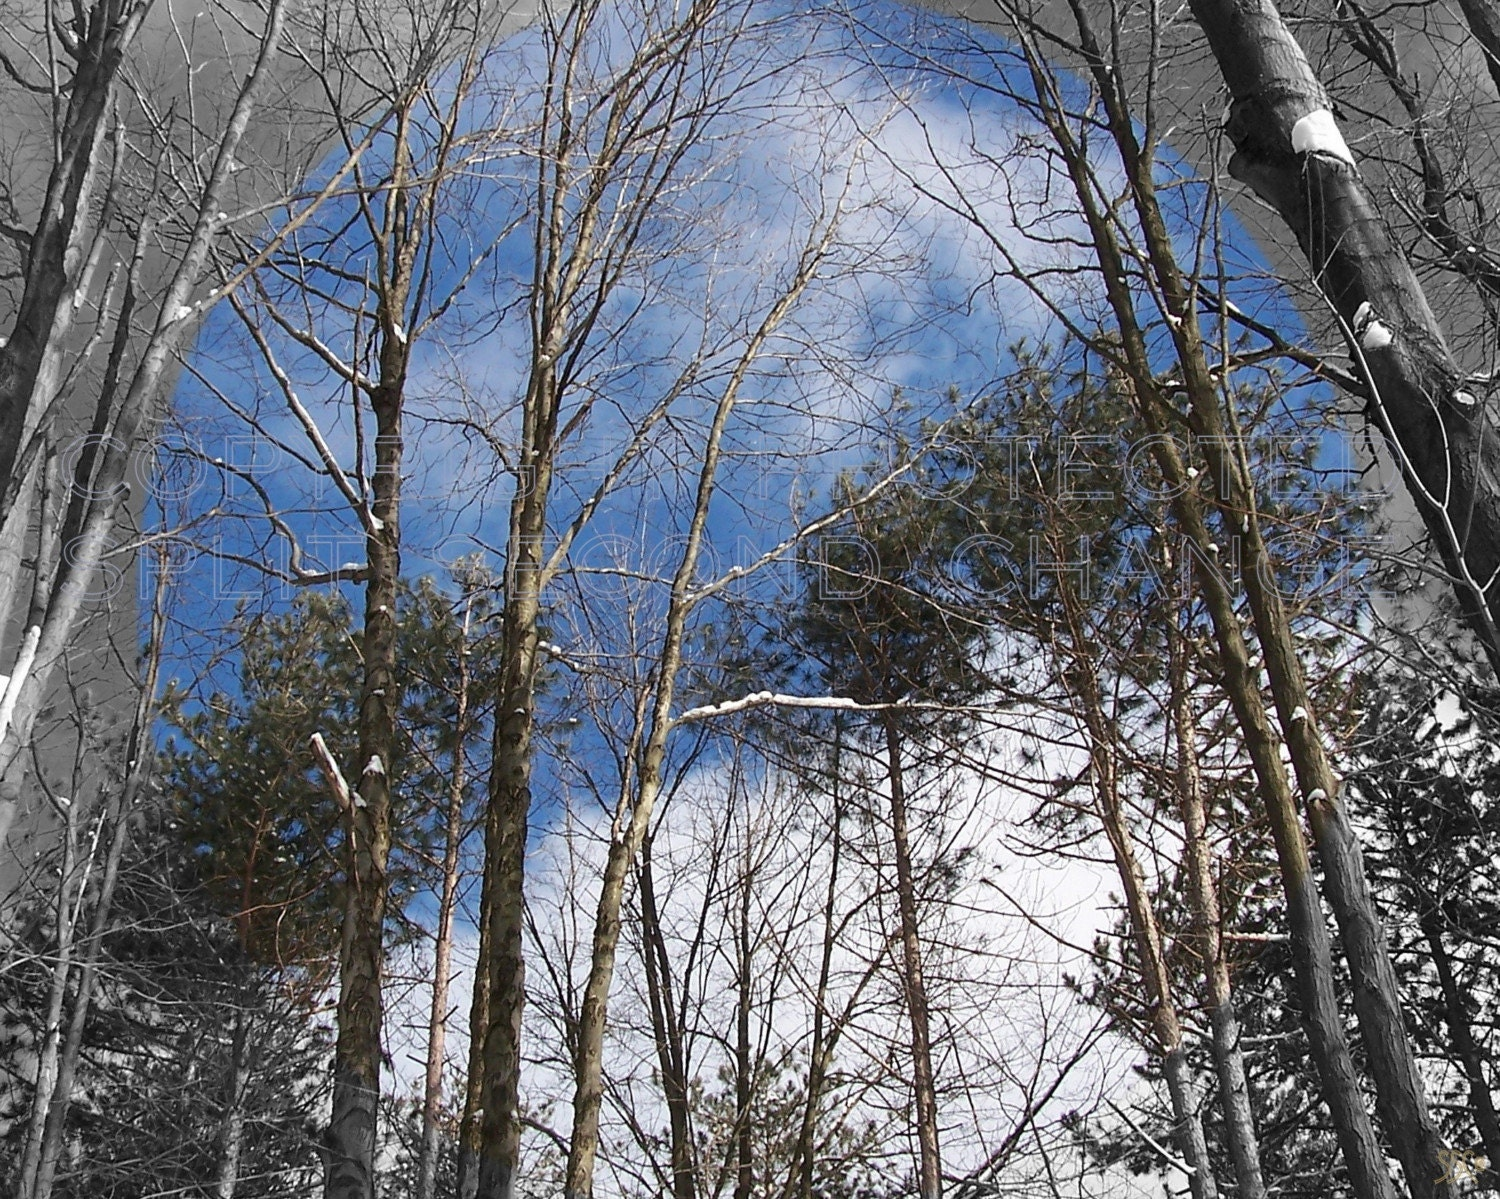 ALLEGHENY NATIONAL FOREST........WINTER SKIES........ 8x10 PHOTOGRAPH